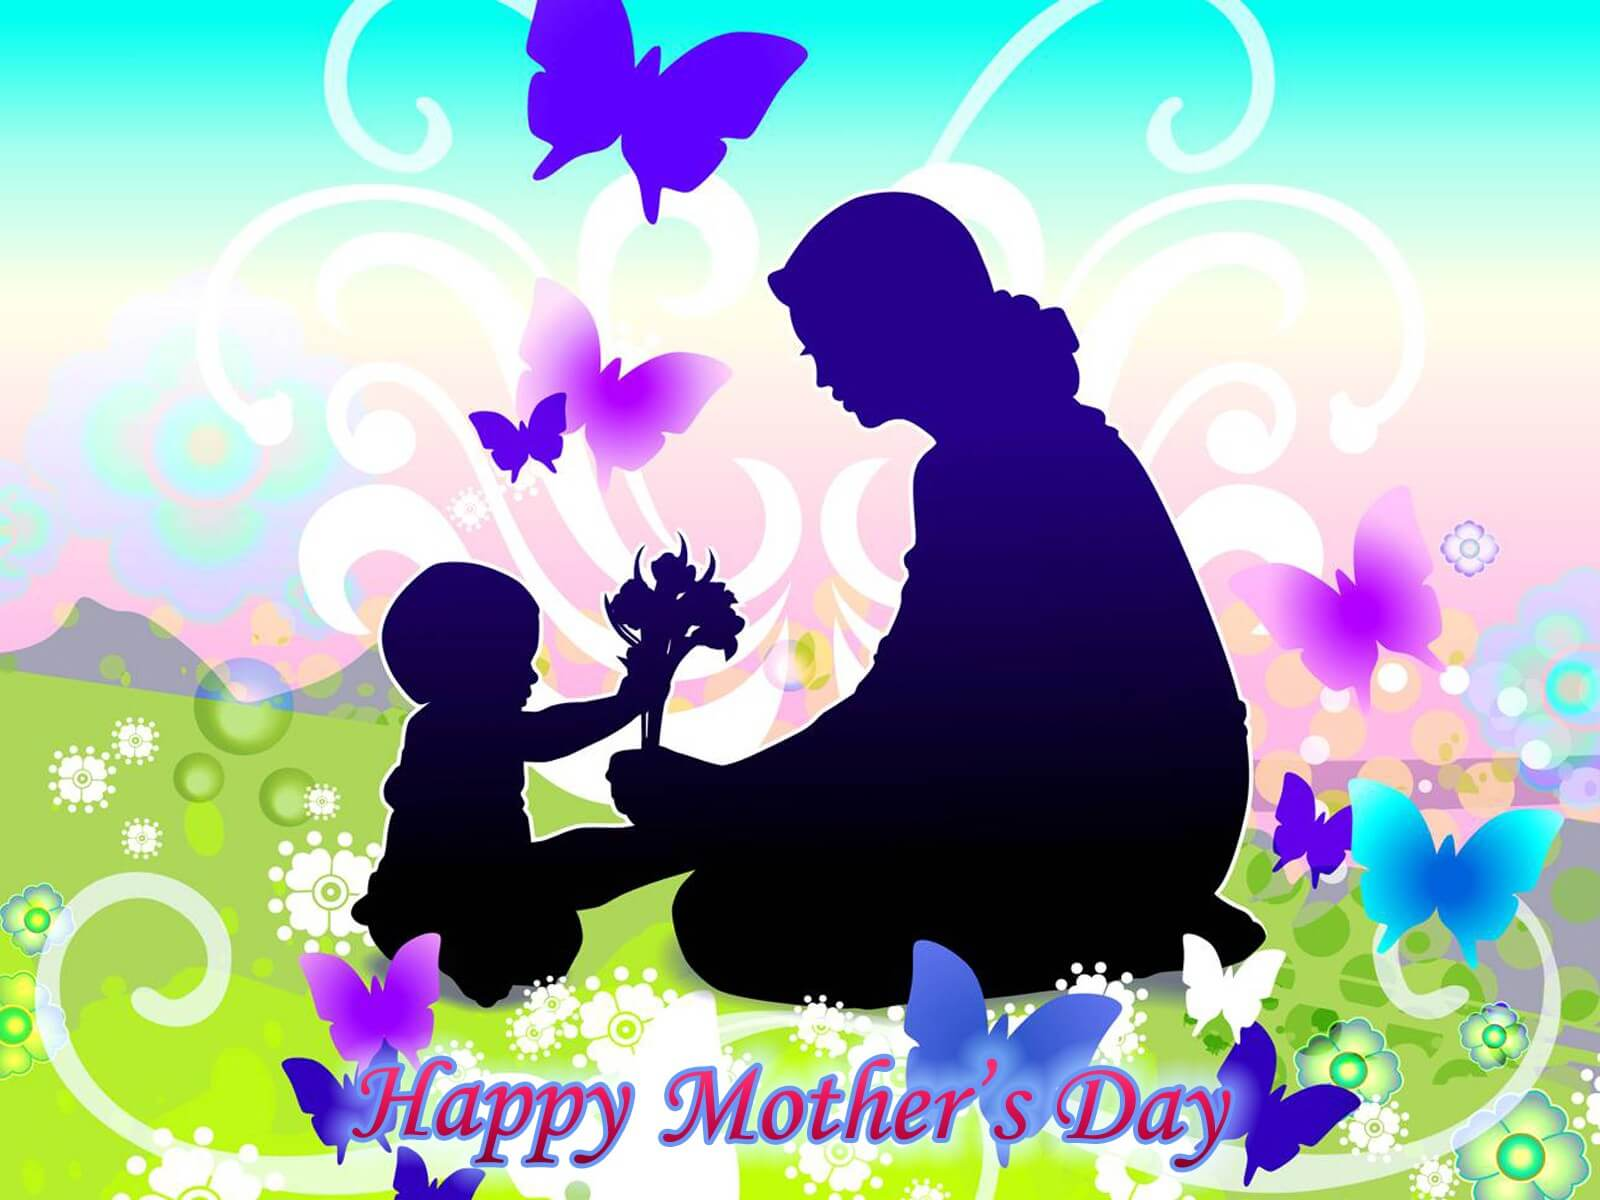 happy mothers day wishes hd wallpaper silhouette